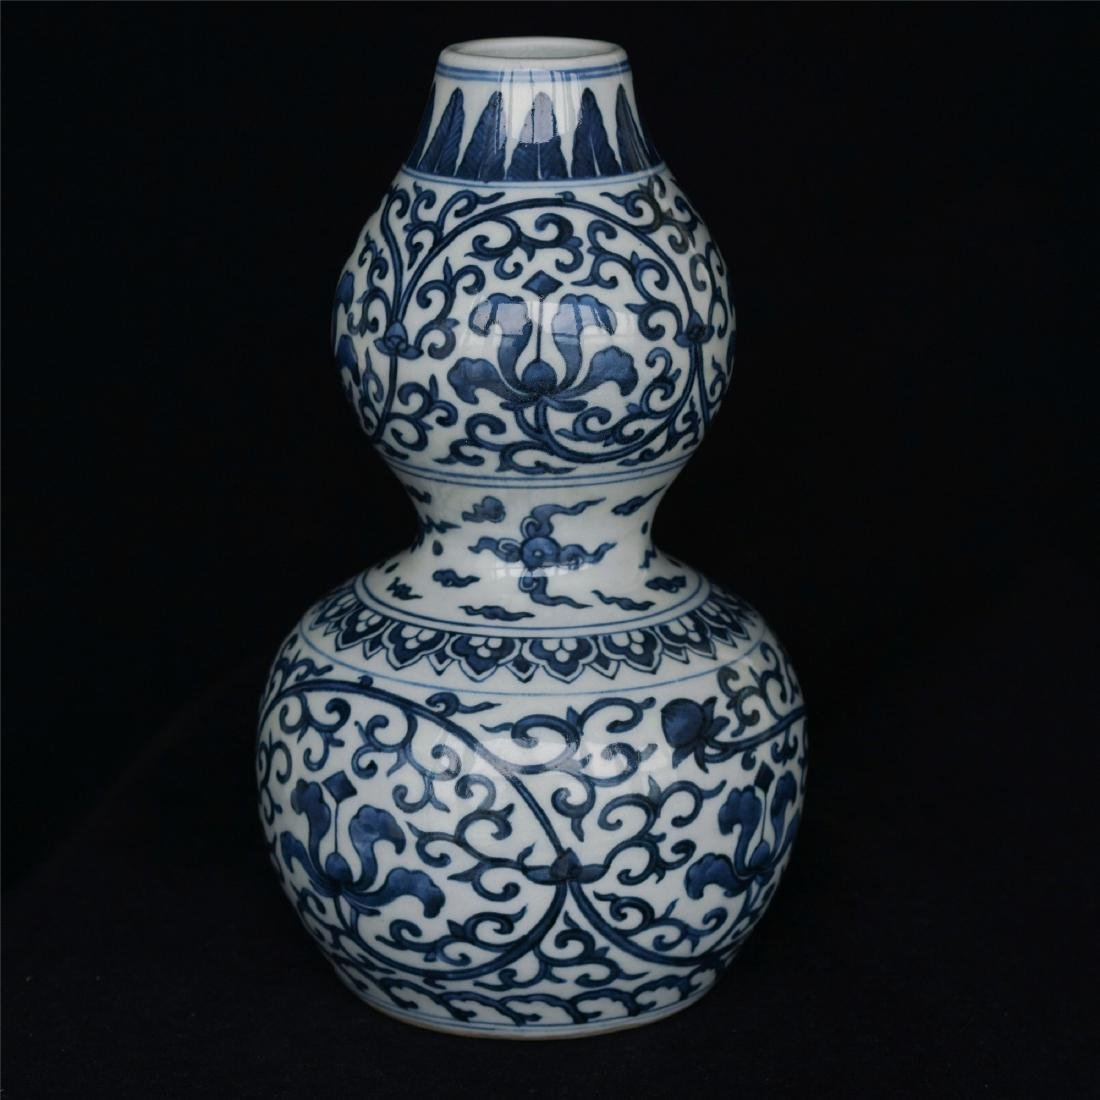 Blue and white porcelain vase of Ming Dynasty WanLi